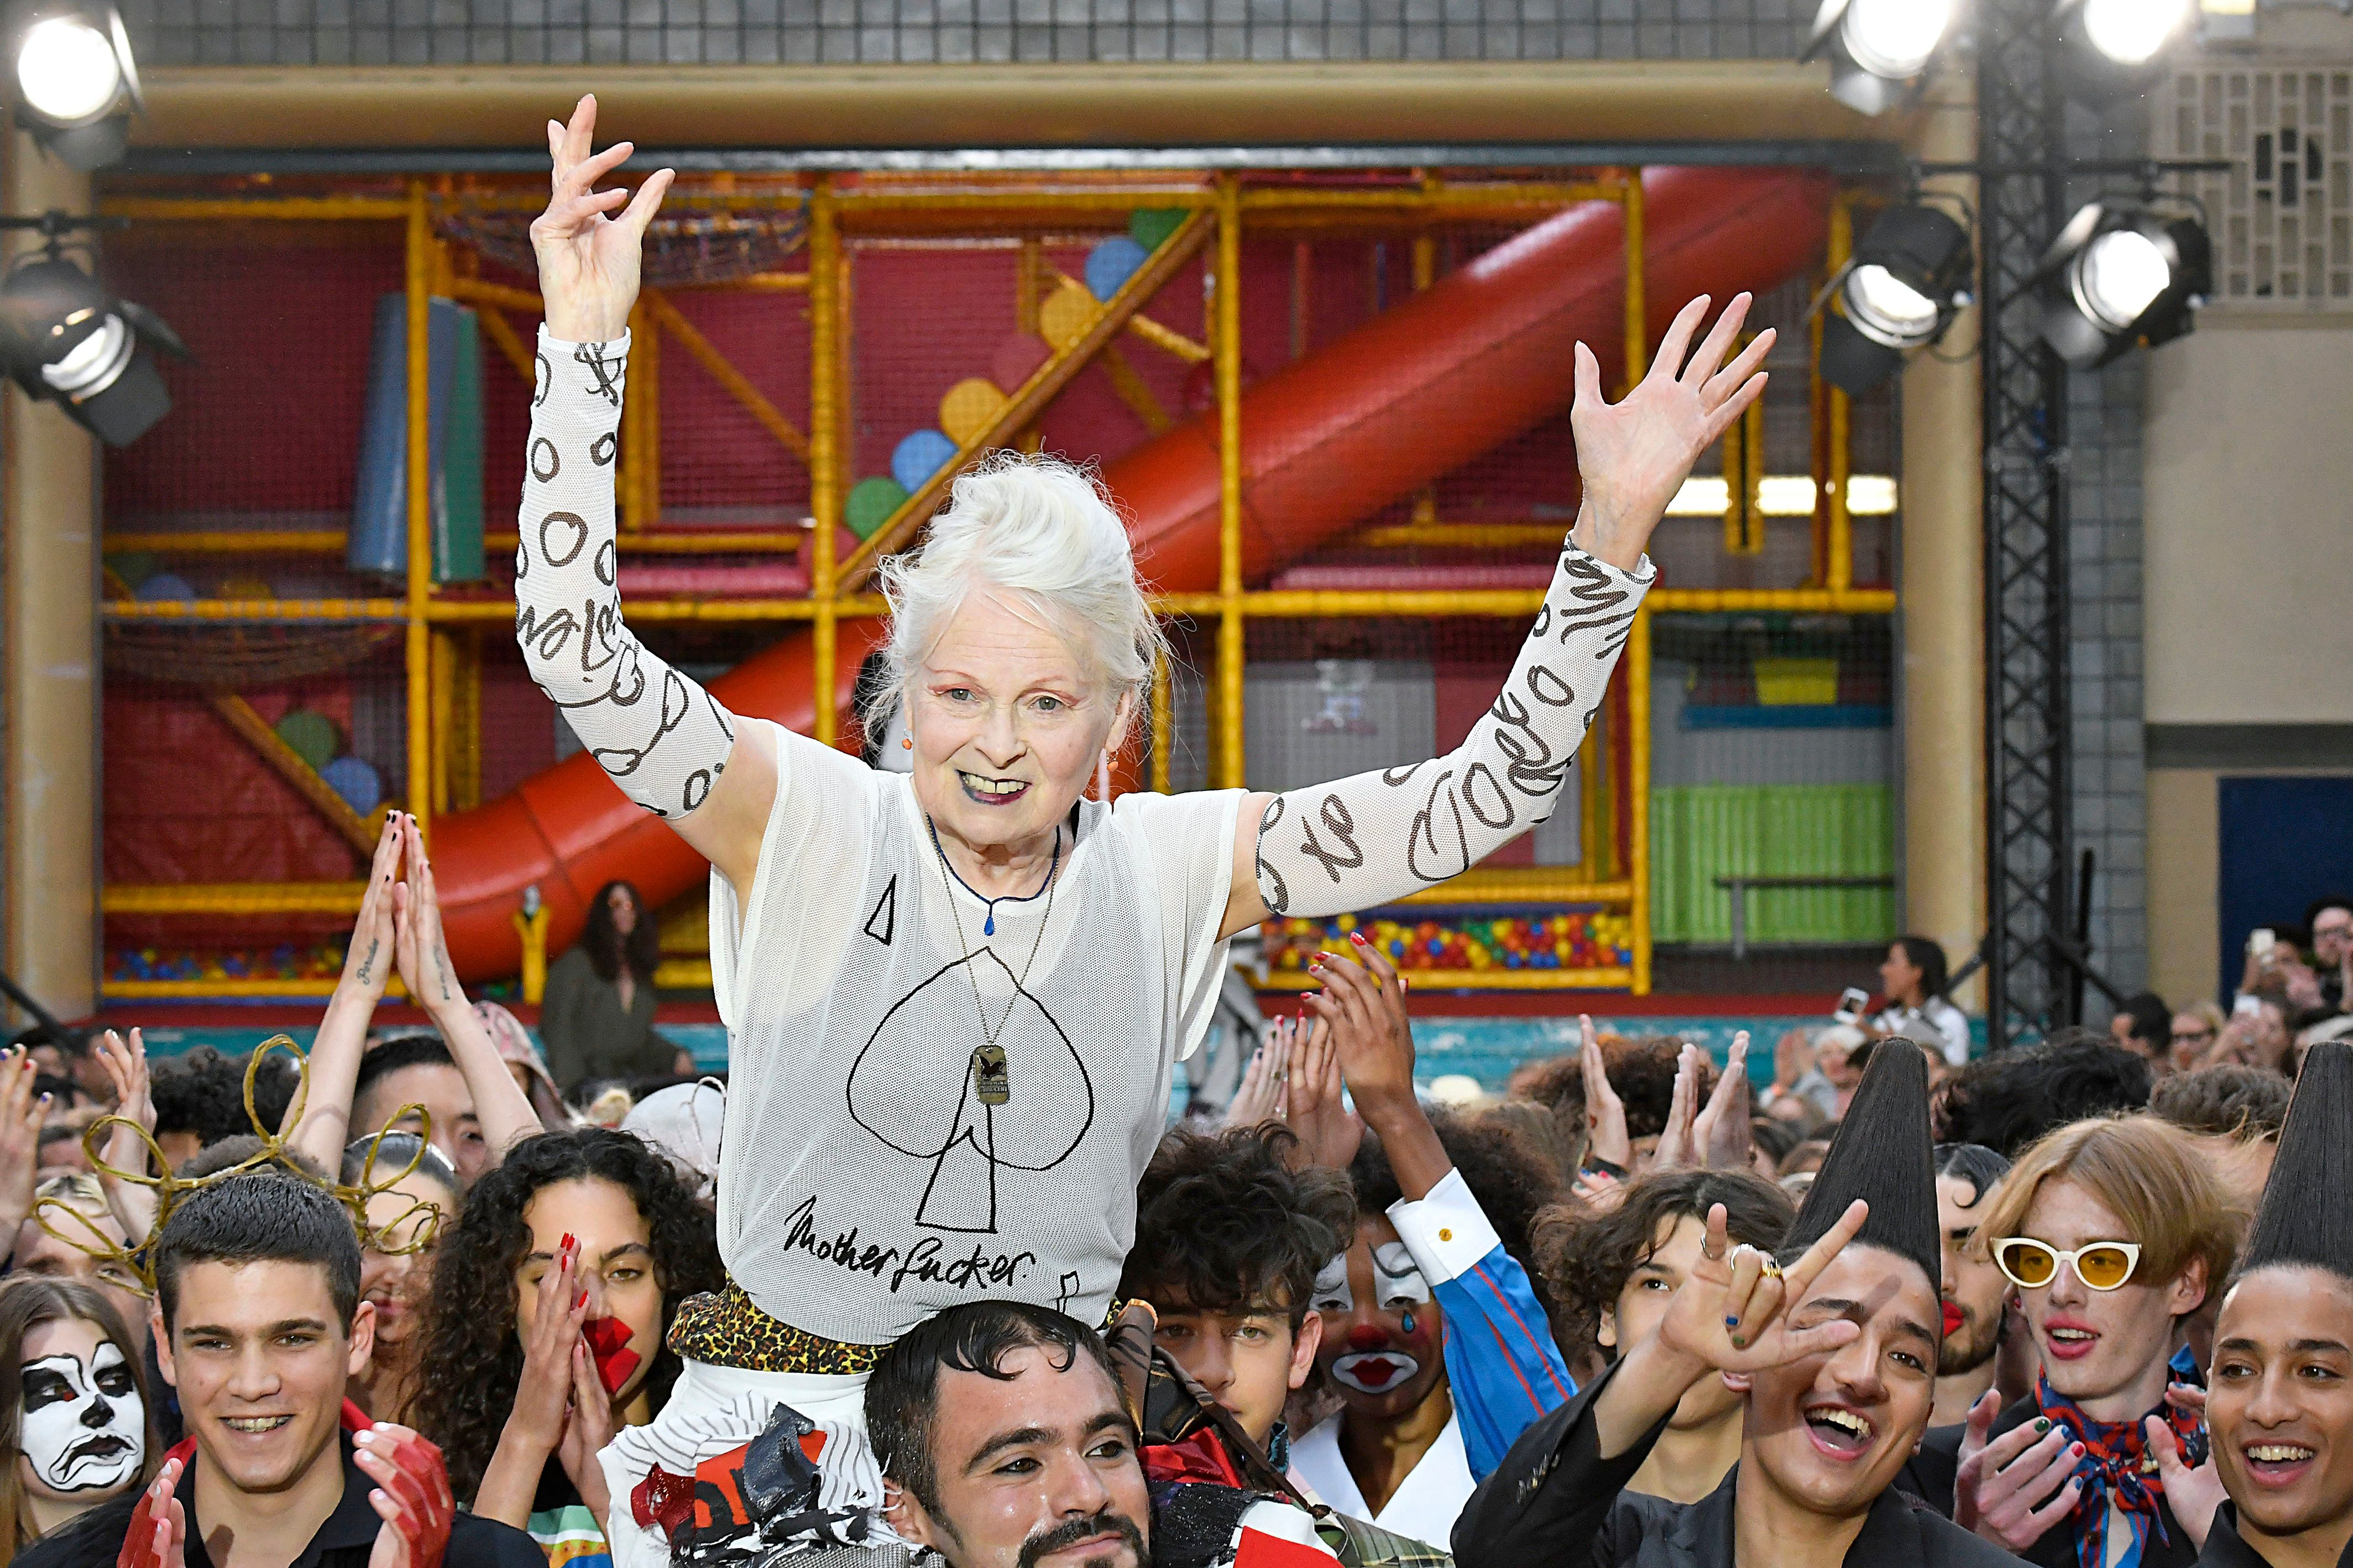 6 Moments We Can't Stop Talking About From Vivienne Westwood's Rebellious